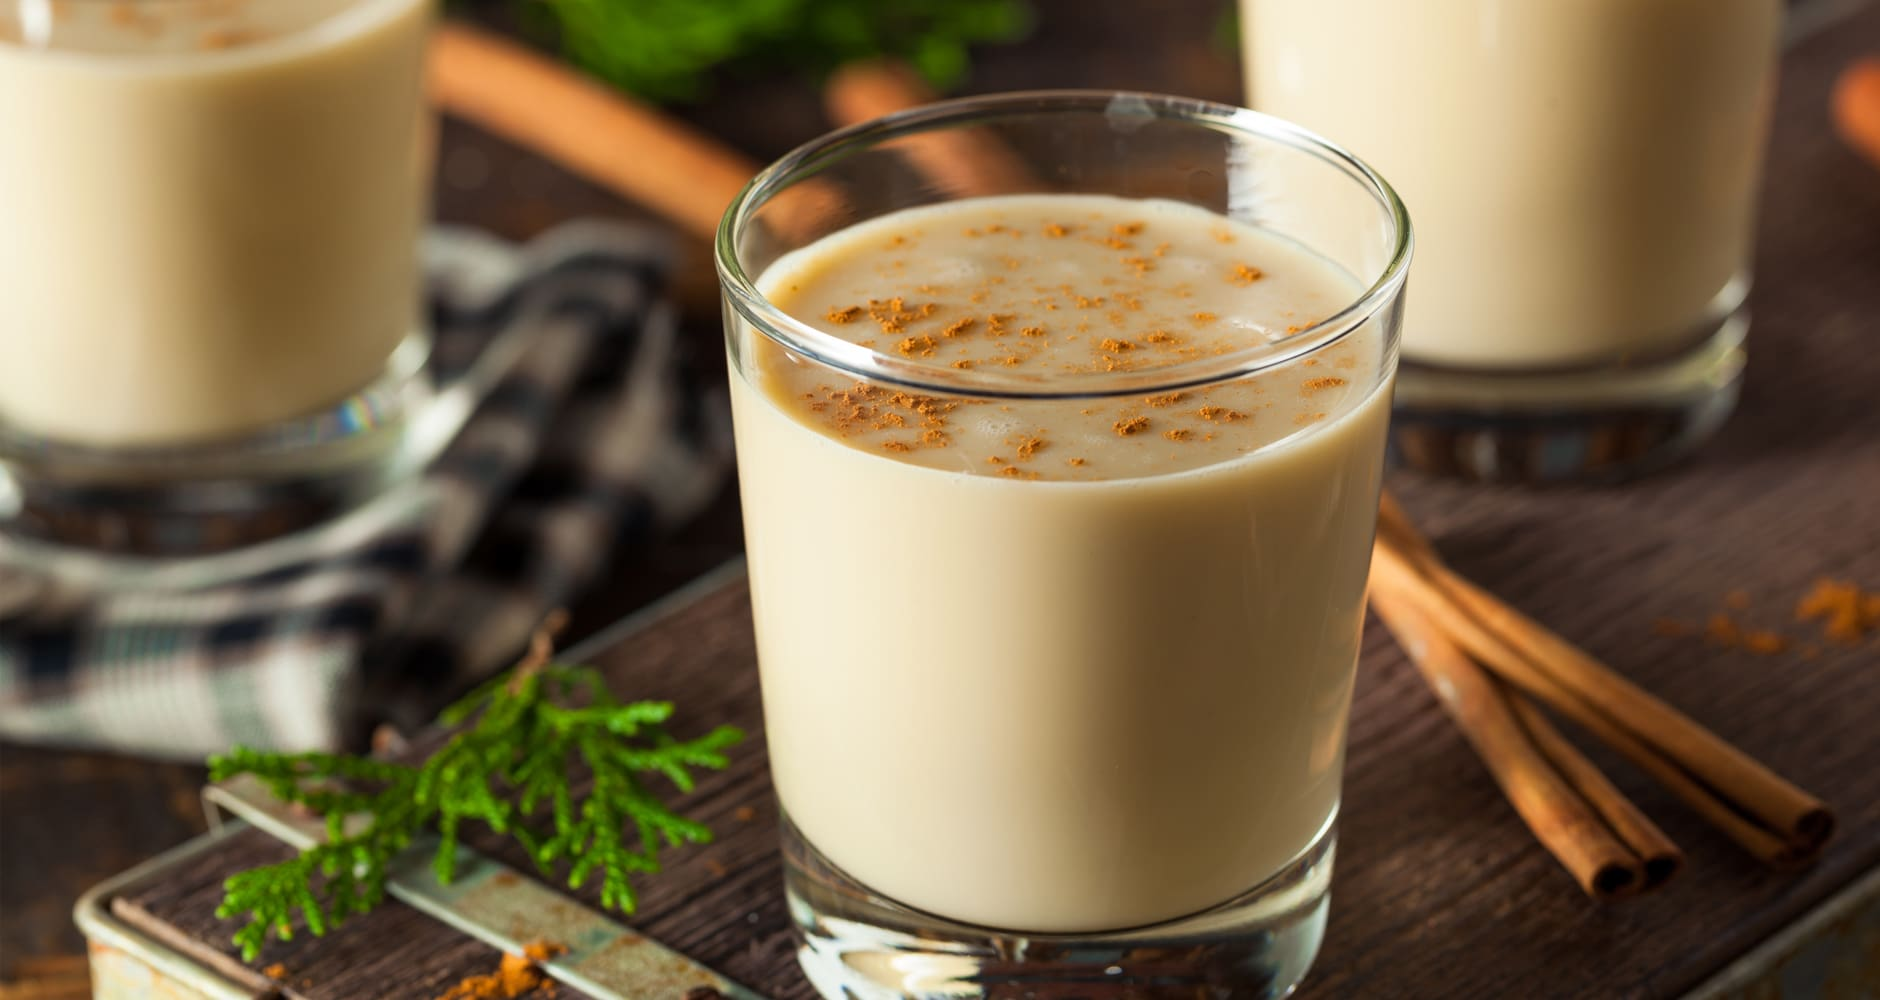 """What's Up With The """"Nog"""" in Eggnog? (Eggnog History and Recipes)image preview"""